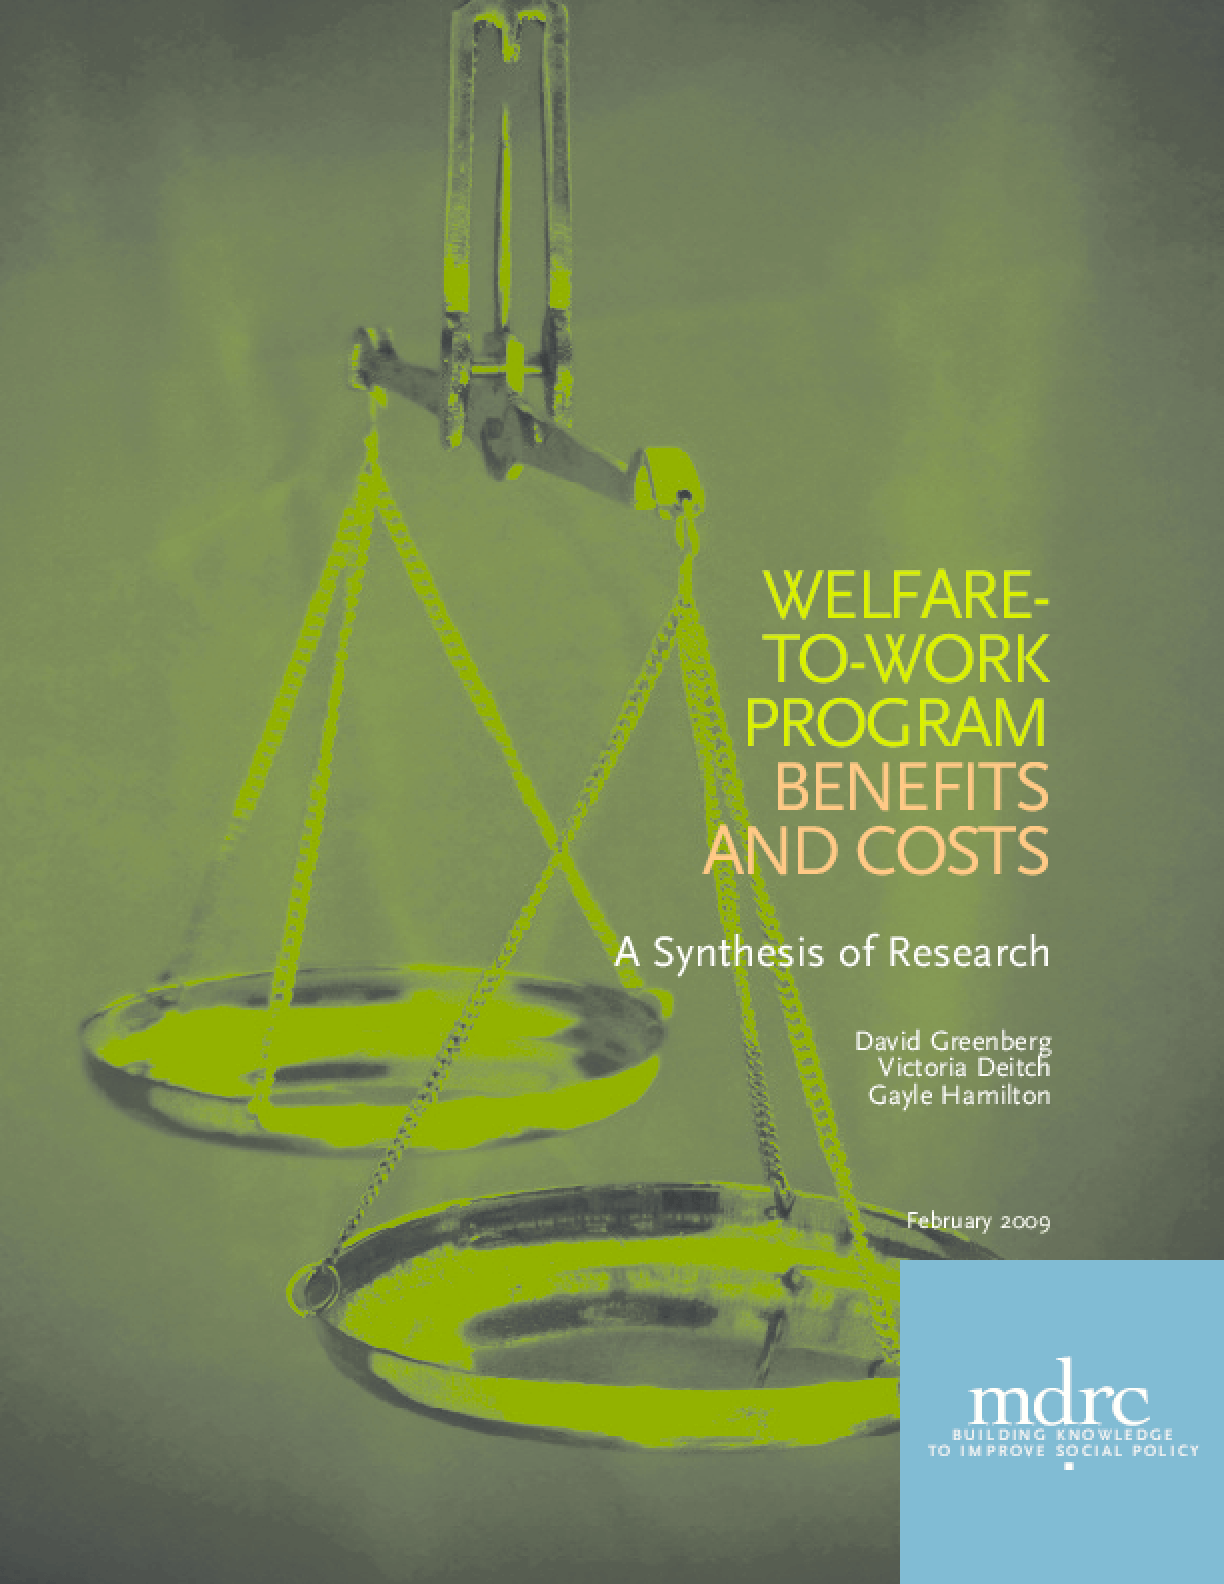 Welfare-to-Work Program Benefits and Costs: A Synthesis of Research